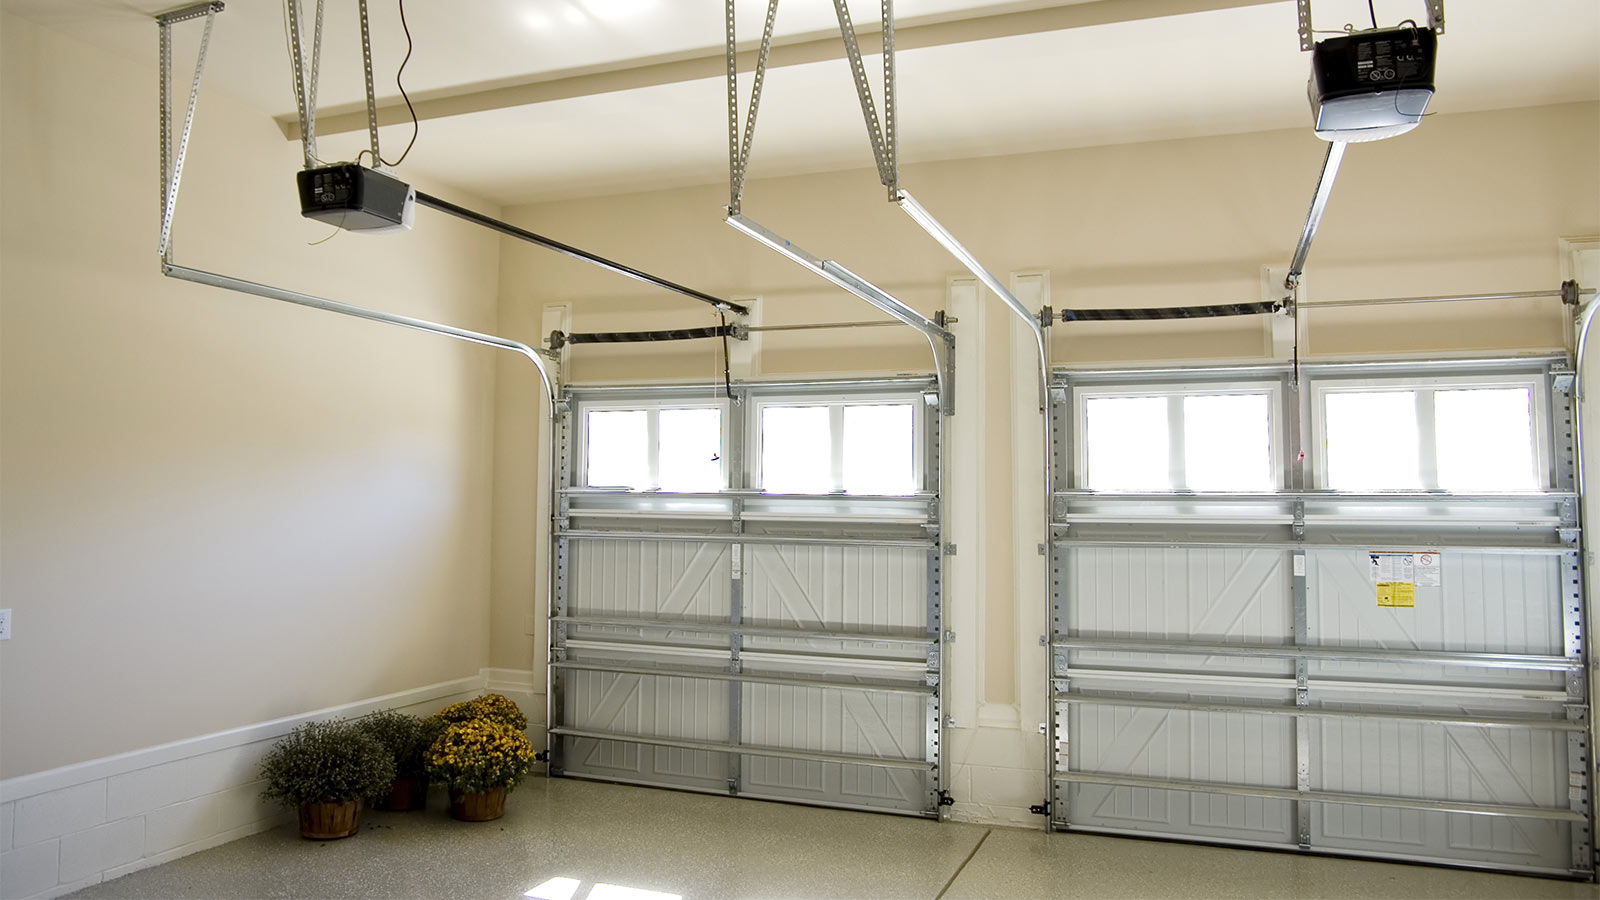 Sectional Garage Doors from Security Gates Rayleigh suppliers.